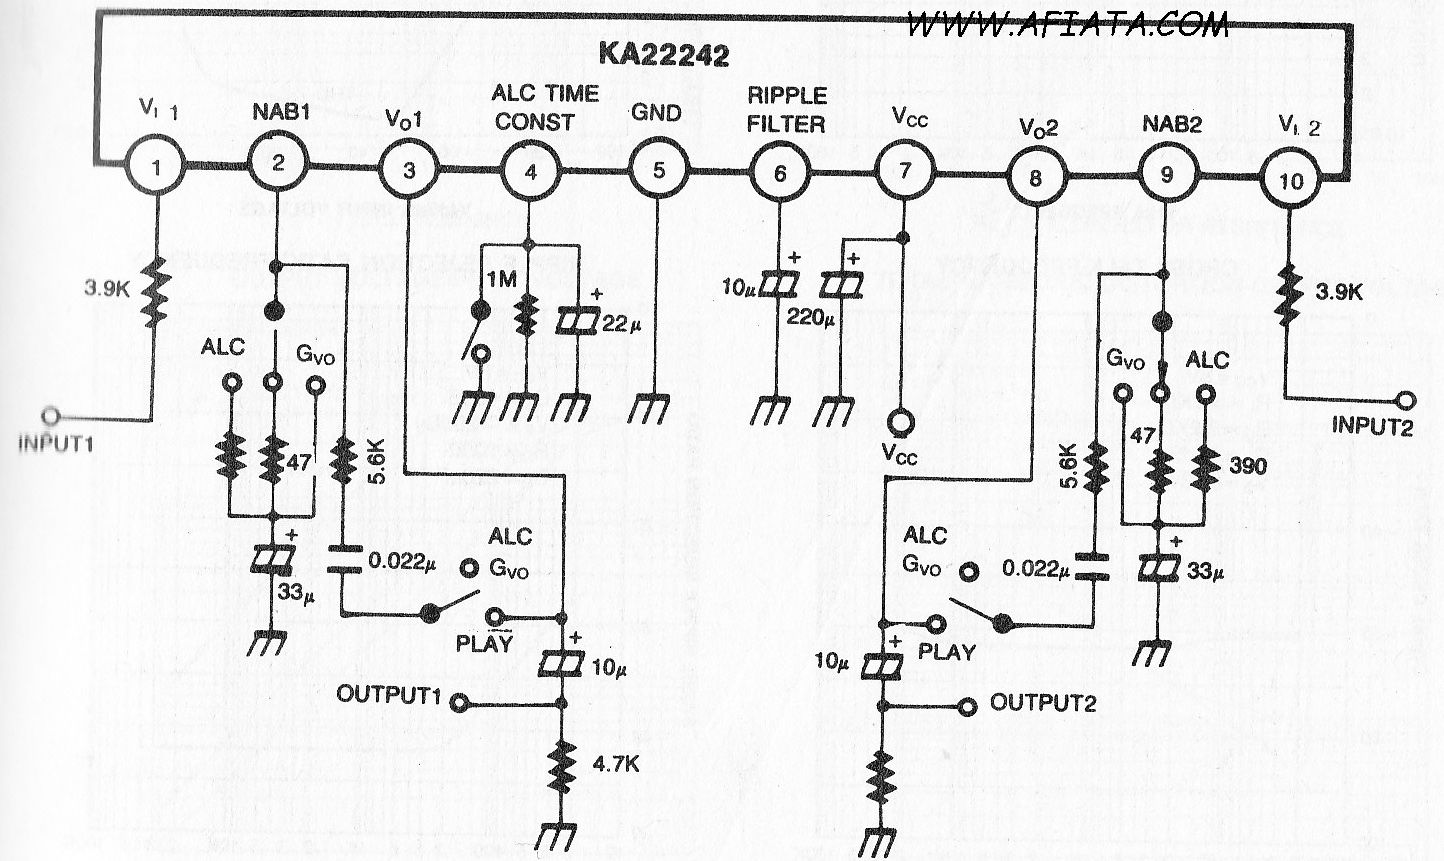 booster audio mixer circuit diagram using ka22242